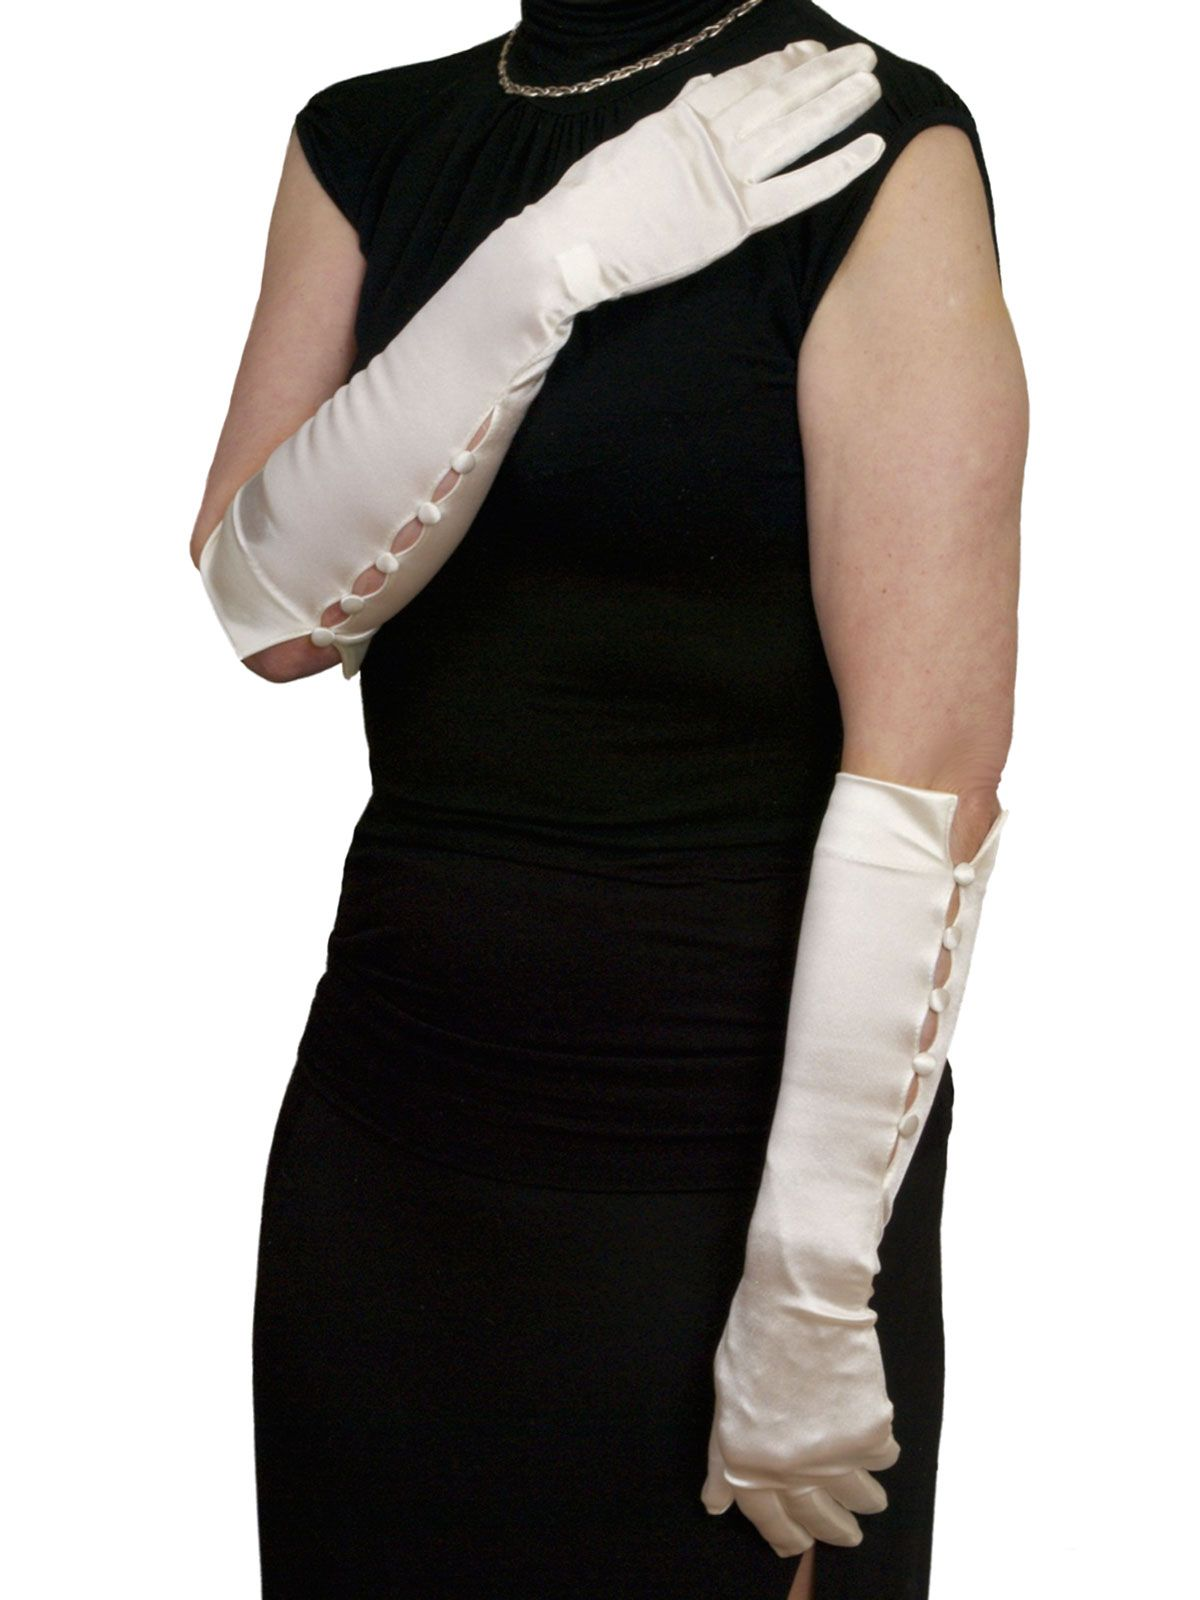 Black gloves evening wear - Dents Long Satin Gloves Length So Elegant Elbow Length Evening Dress Gloves In Fine Stretch Satin Featuring 5 Button On The Outer Seam In Black White